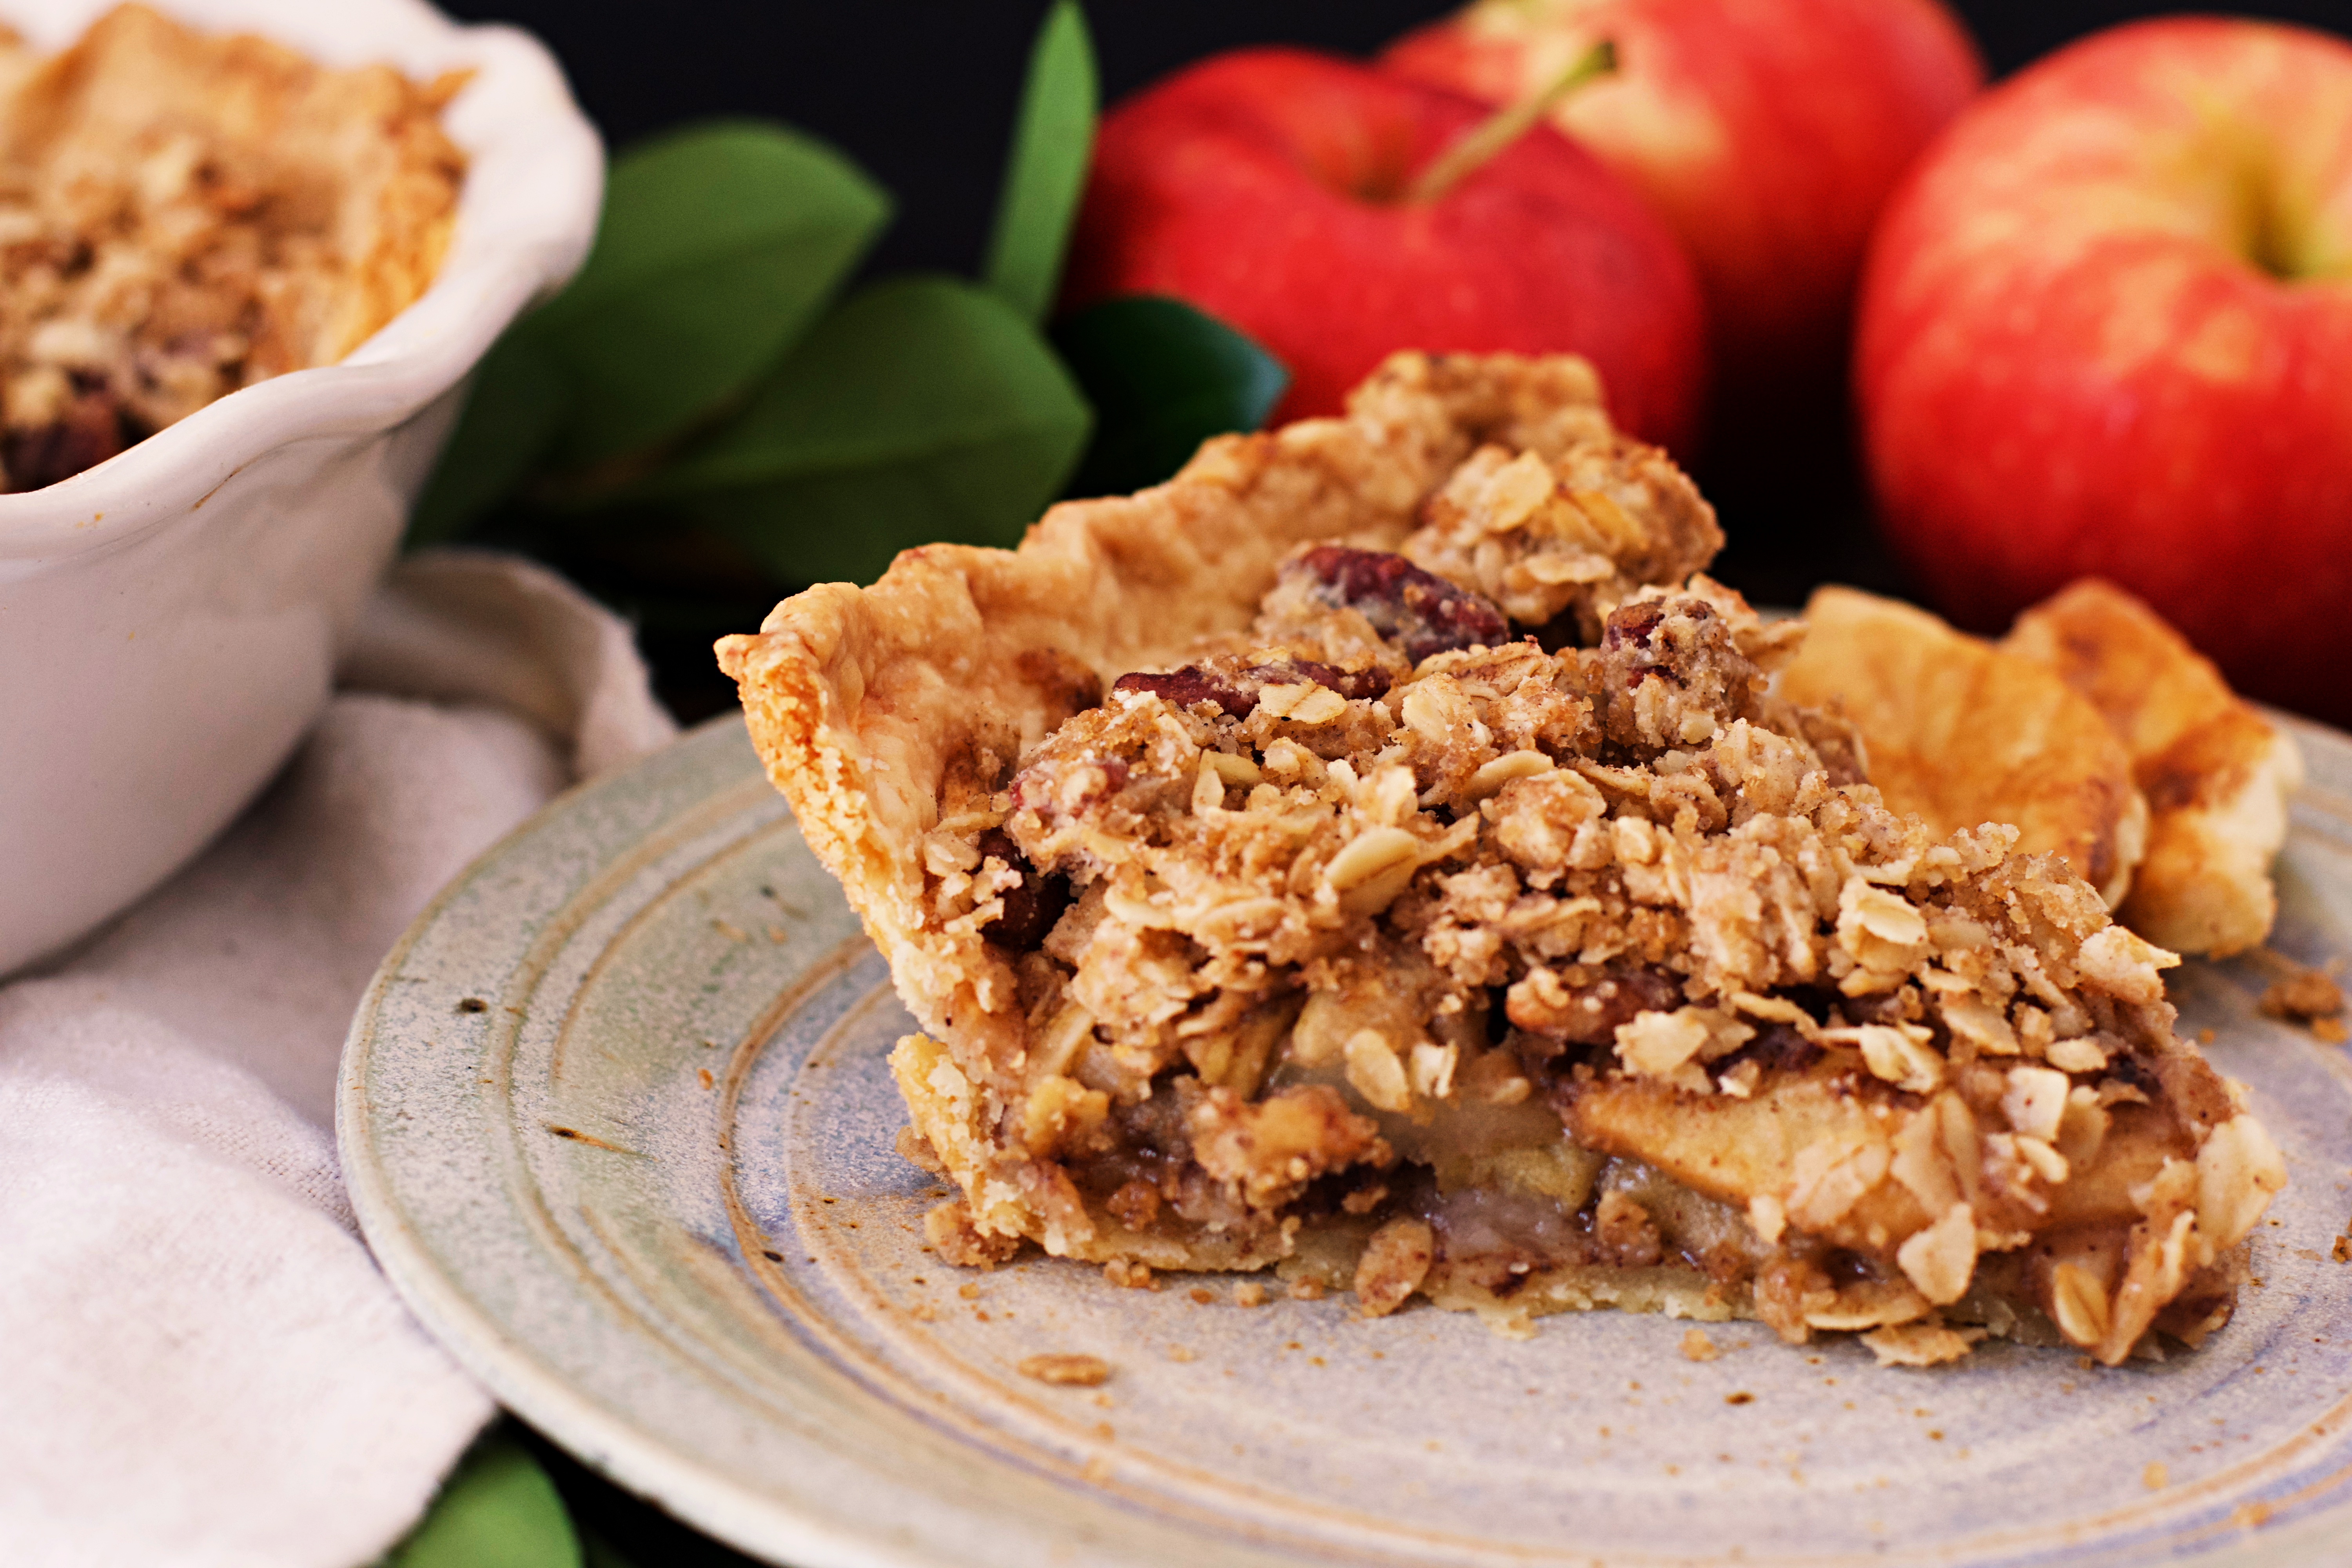 Spiced apple pie with crumb topping